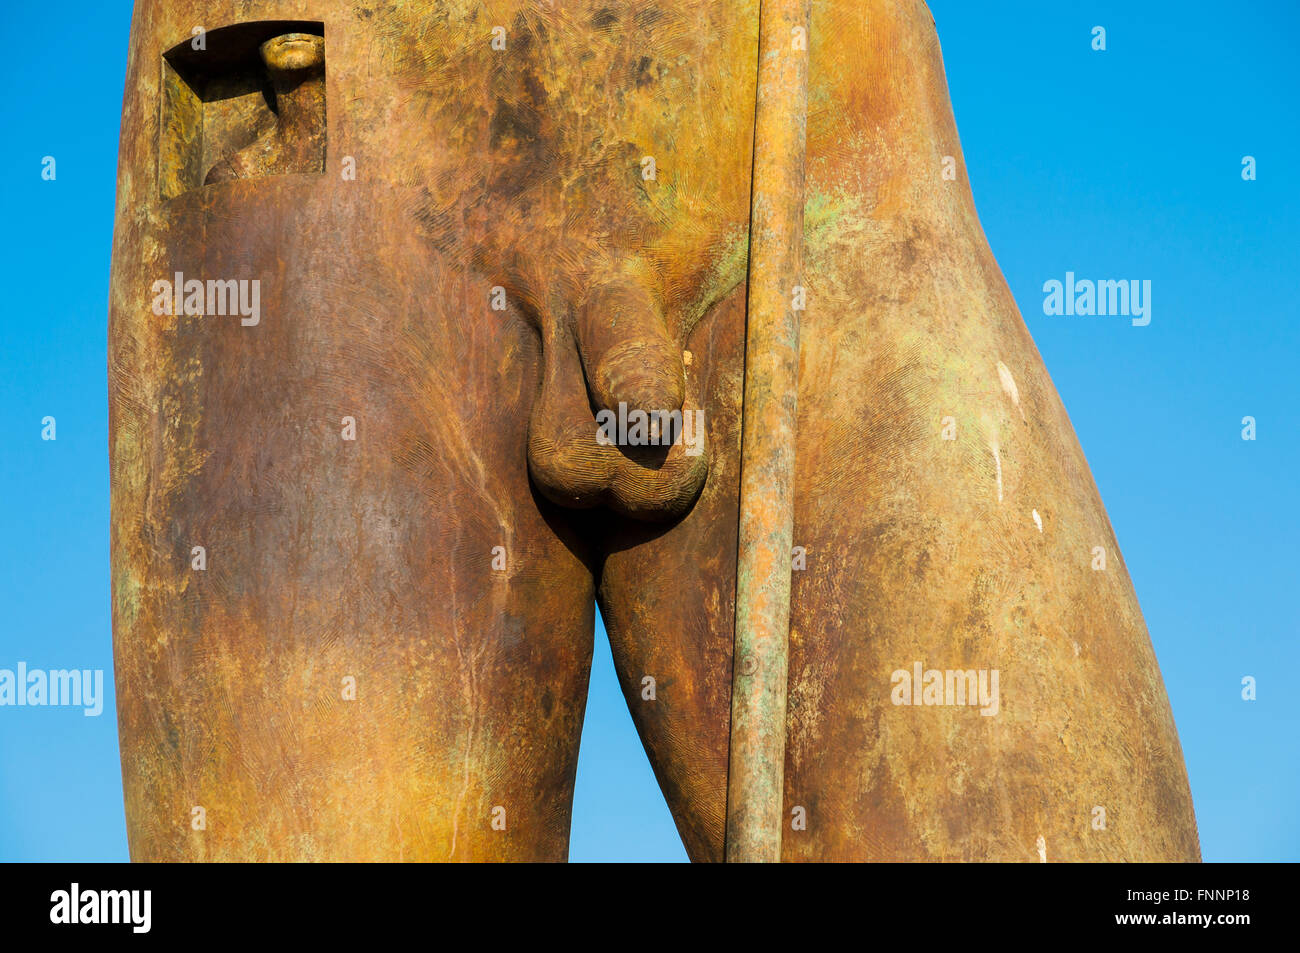 Detail of Daedalus, bronze sculpture by Igor Mitoraj. Valley of the Temples. Agrigento. Sicily. Italy - Stock Image